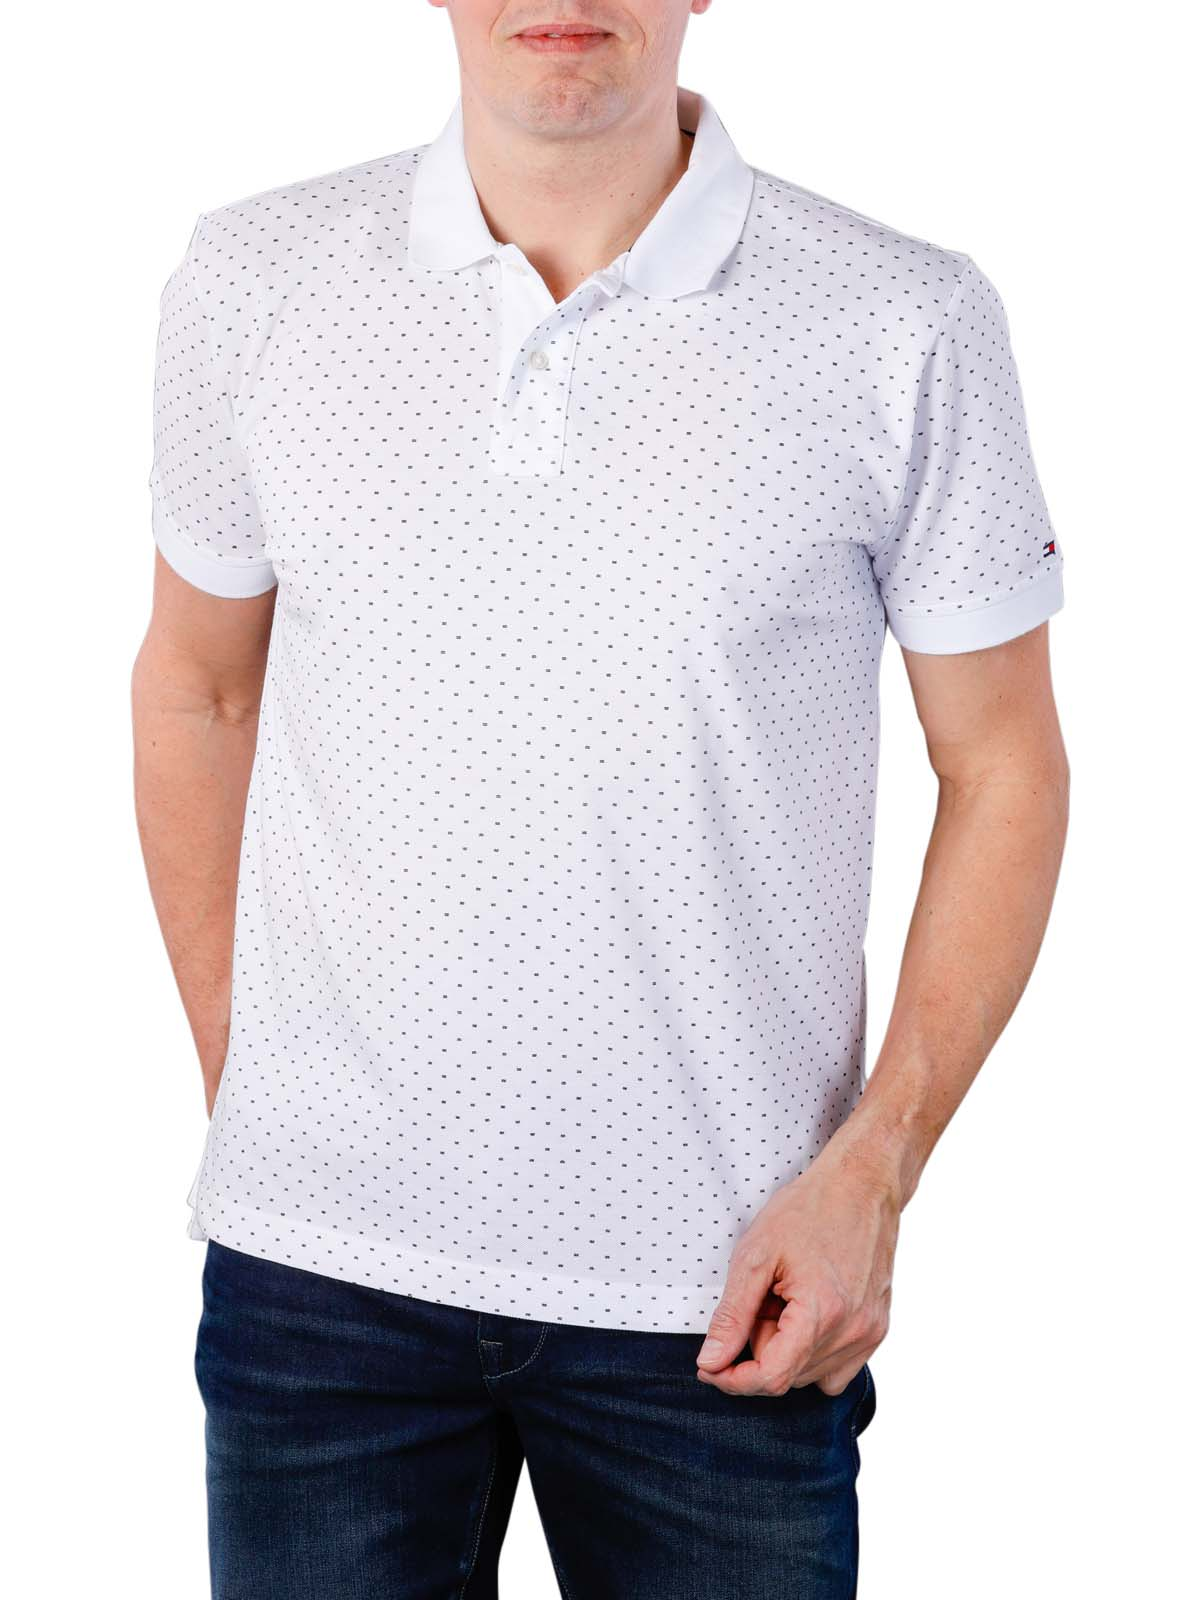 4edde867 Fast Delivery | Tommy Hilfiger Micro Print Regular Polo ... - McJeans.ch